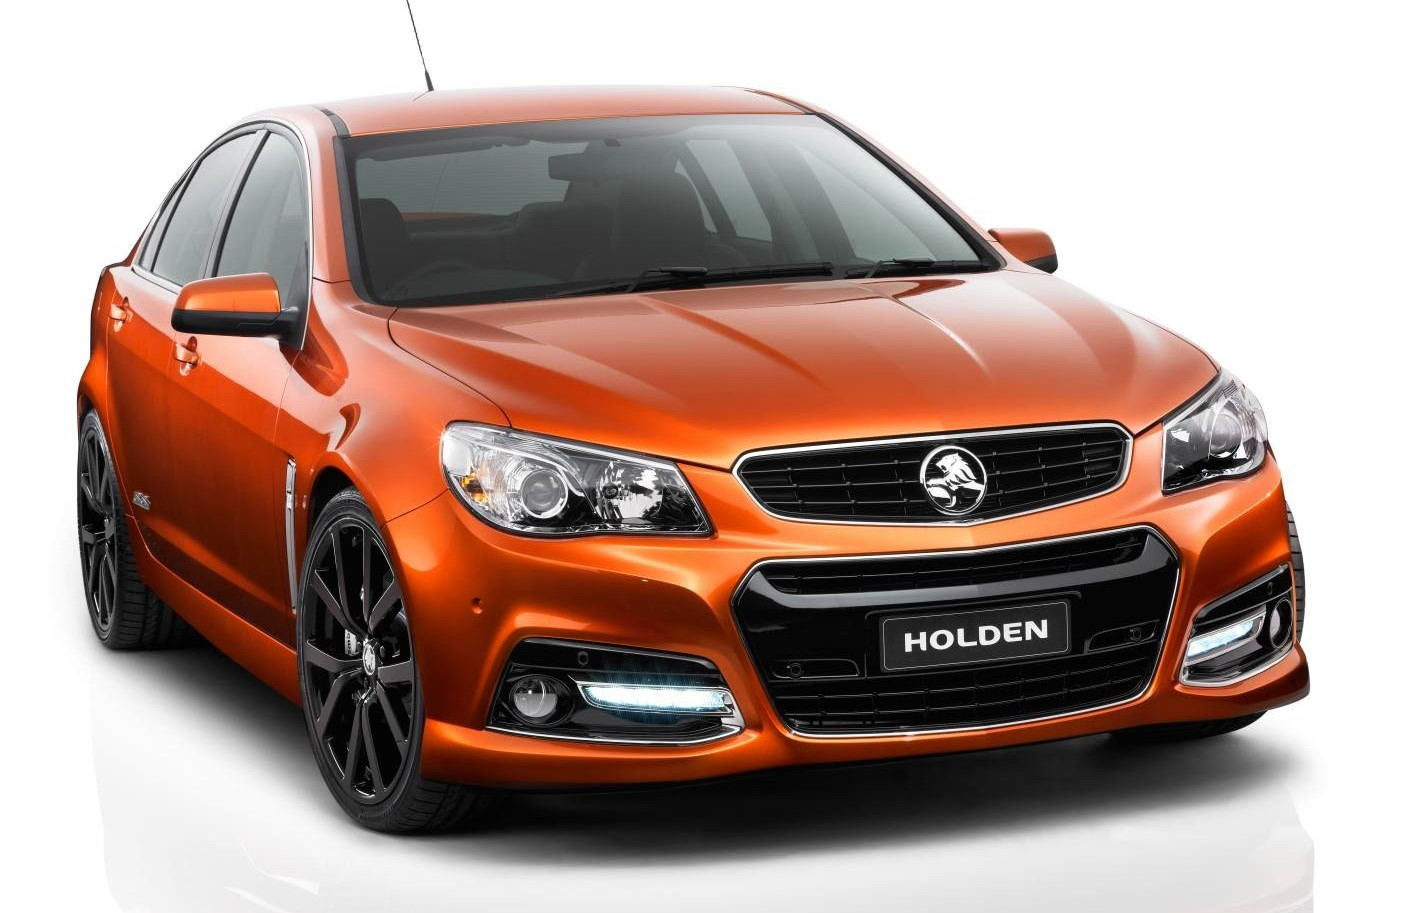 Holden Commodore #6